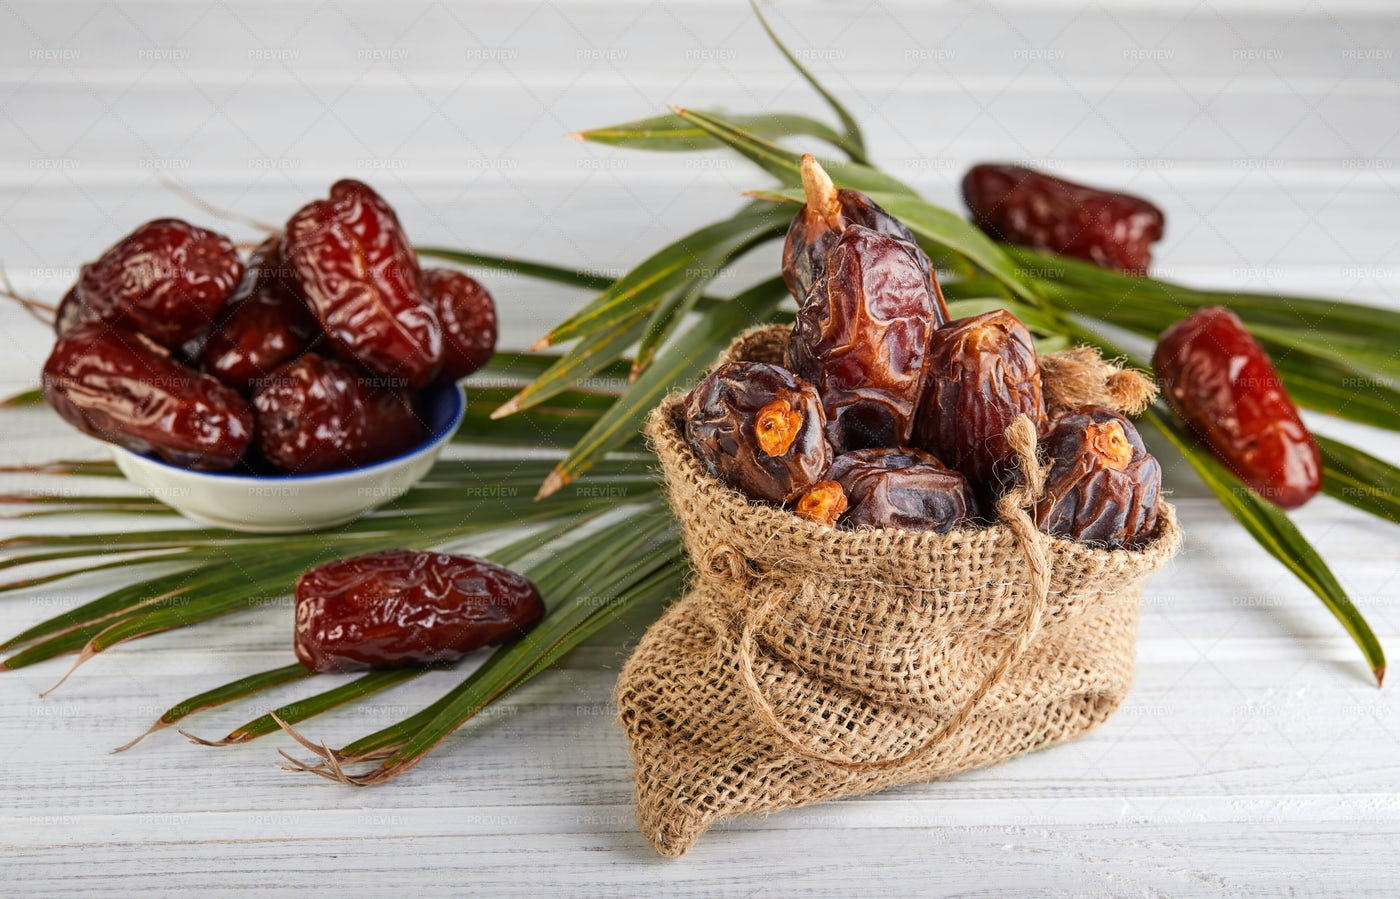 Dates In The Sack: Stock Photos